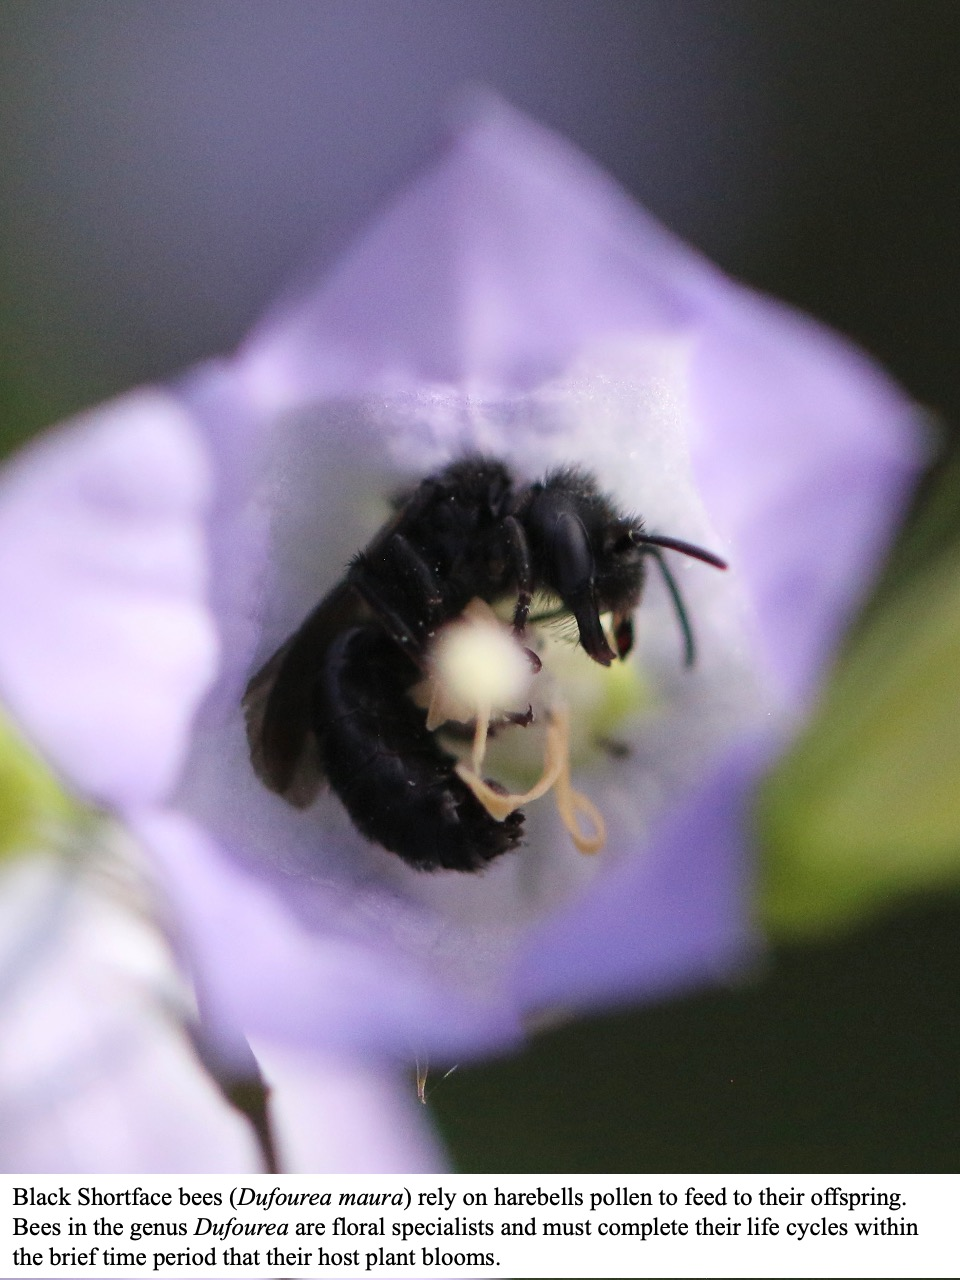 Black Shortface bees (Dufourea maura) rely on harebells pollen to feed to their offspring.